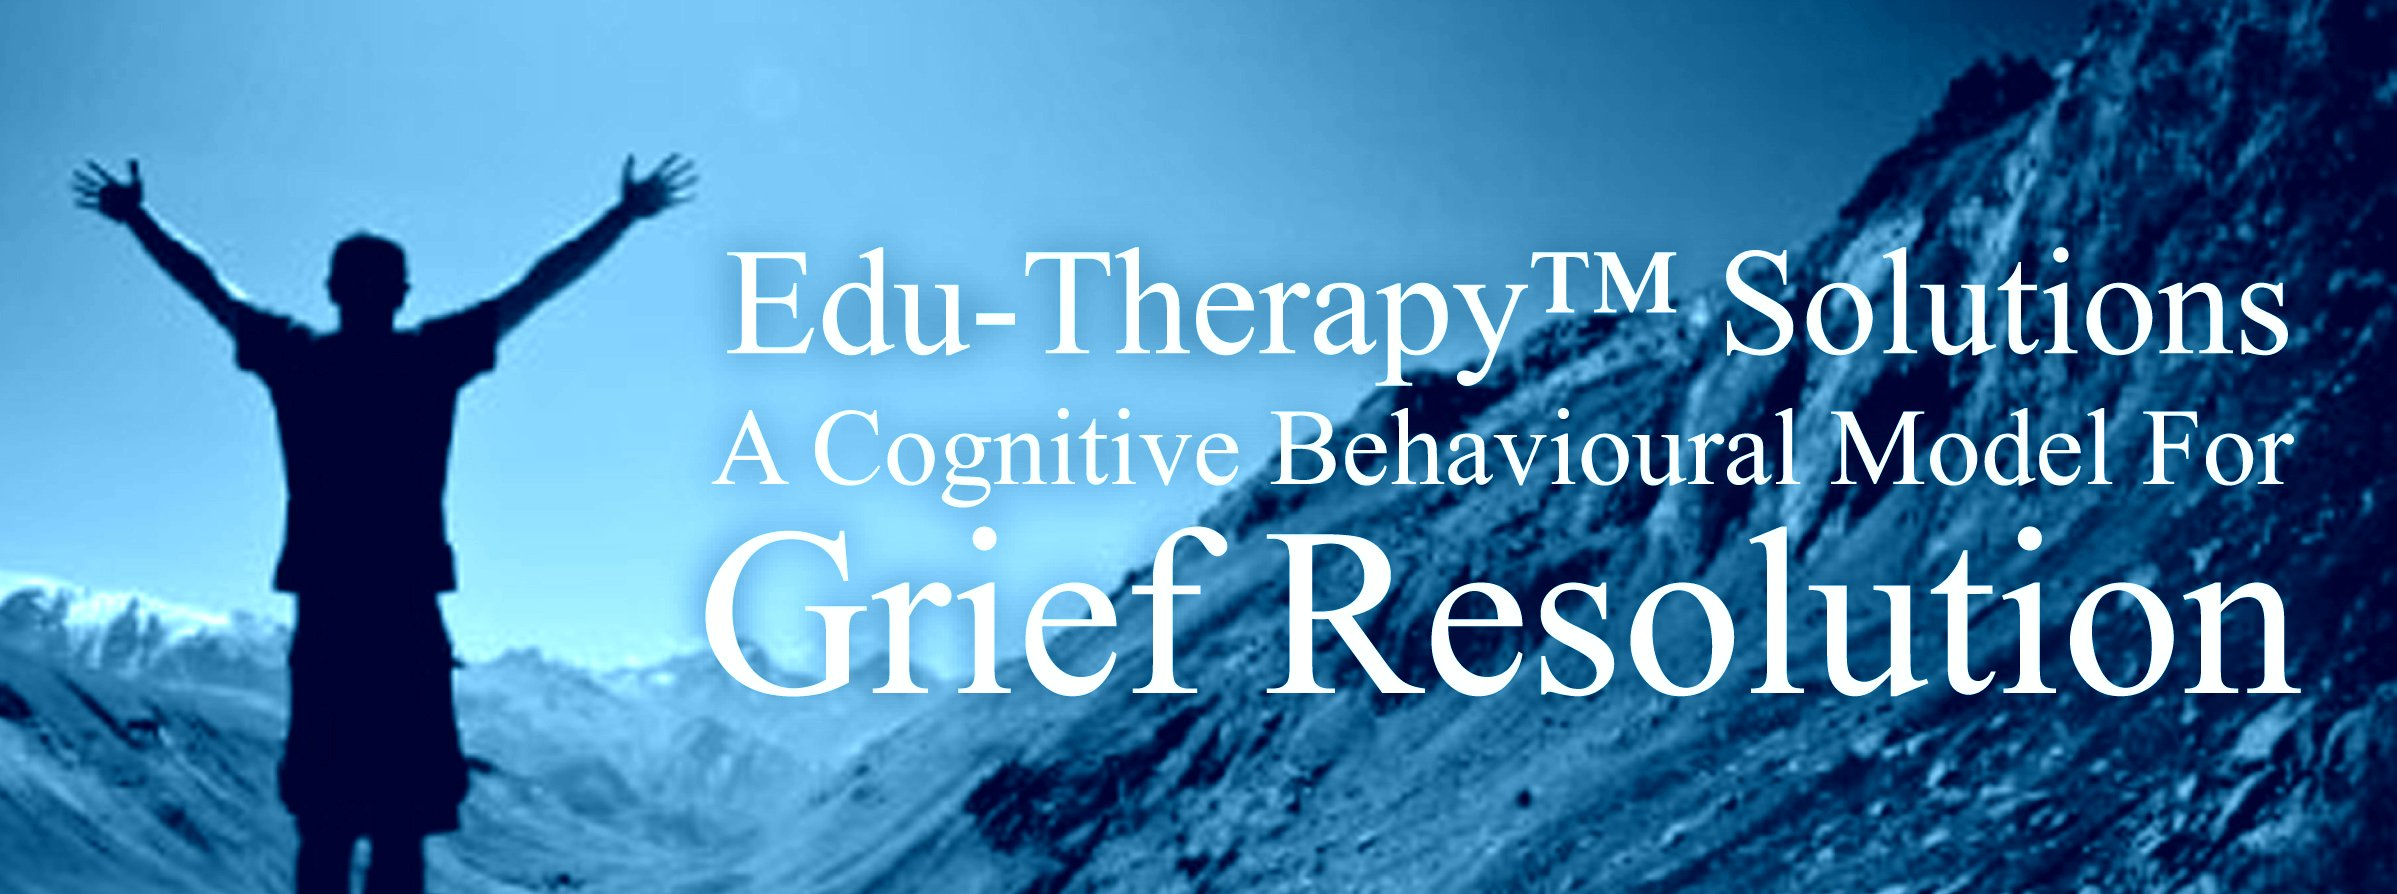 Edu Therapy Certification Training Special For Camft Members Edu